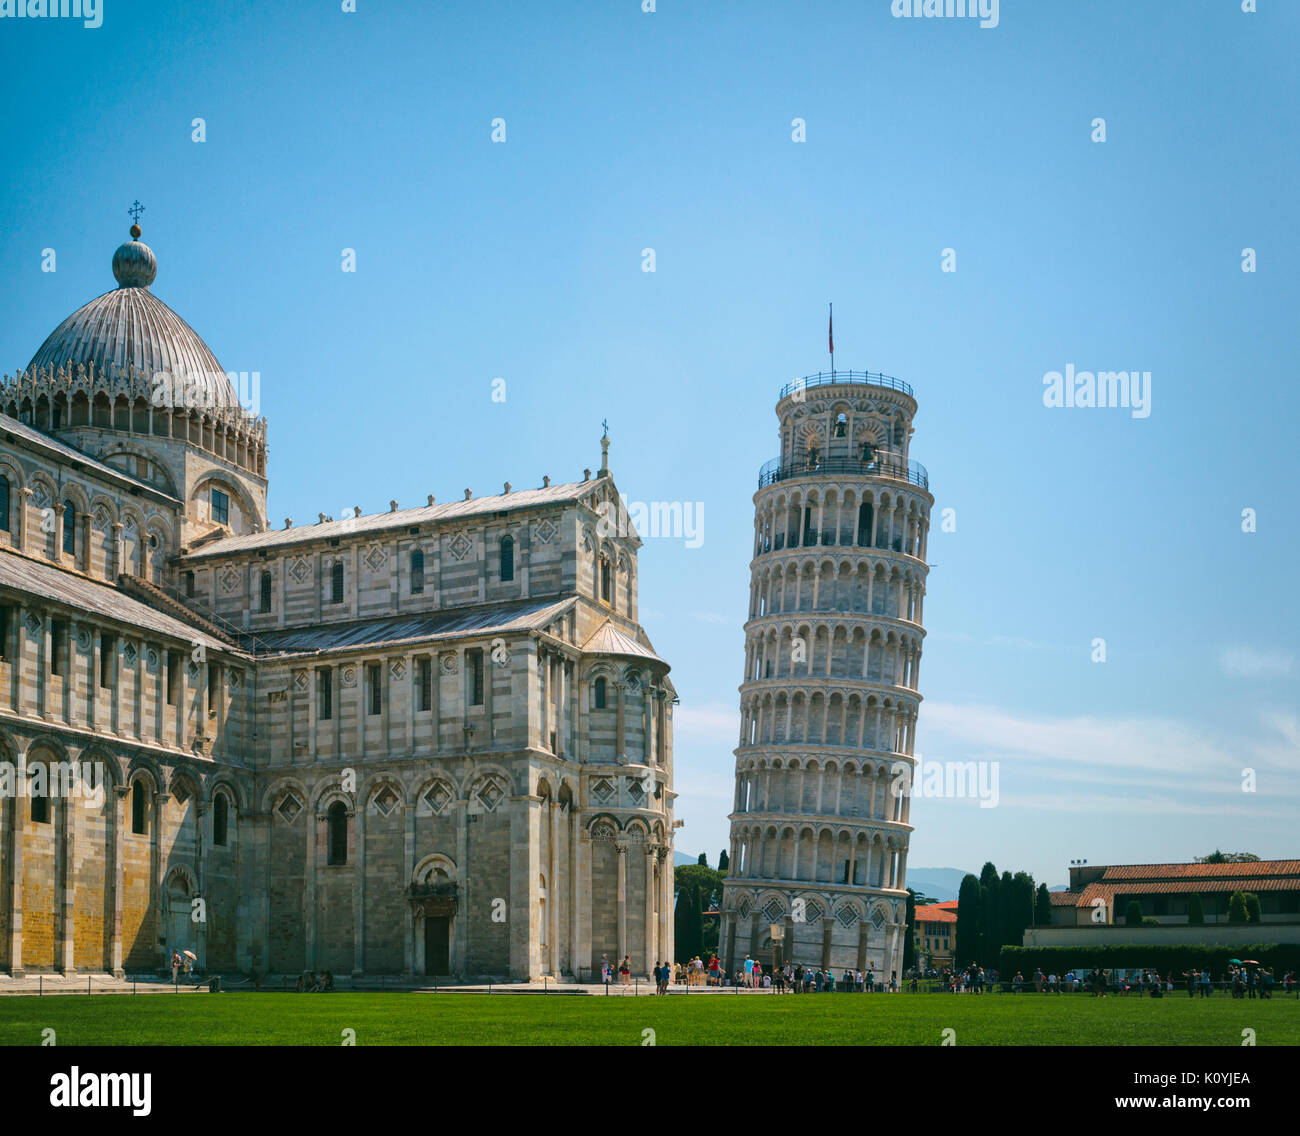 Pisa, Pisa Province, Tuscany, Italy.  Campo dei Miracoli, or Field of Miracles.  Also known as the Piazza del Duomo. Stock Photo